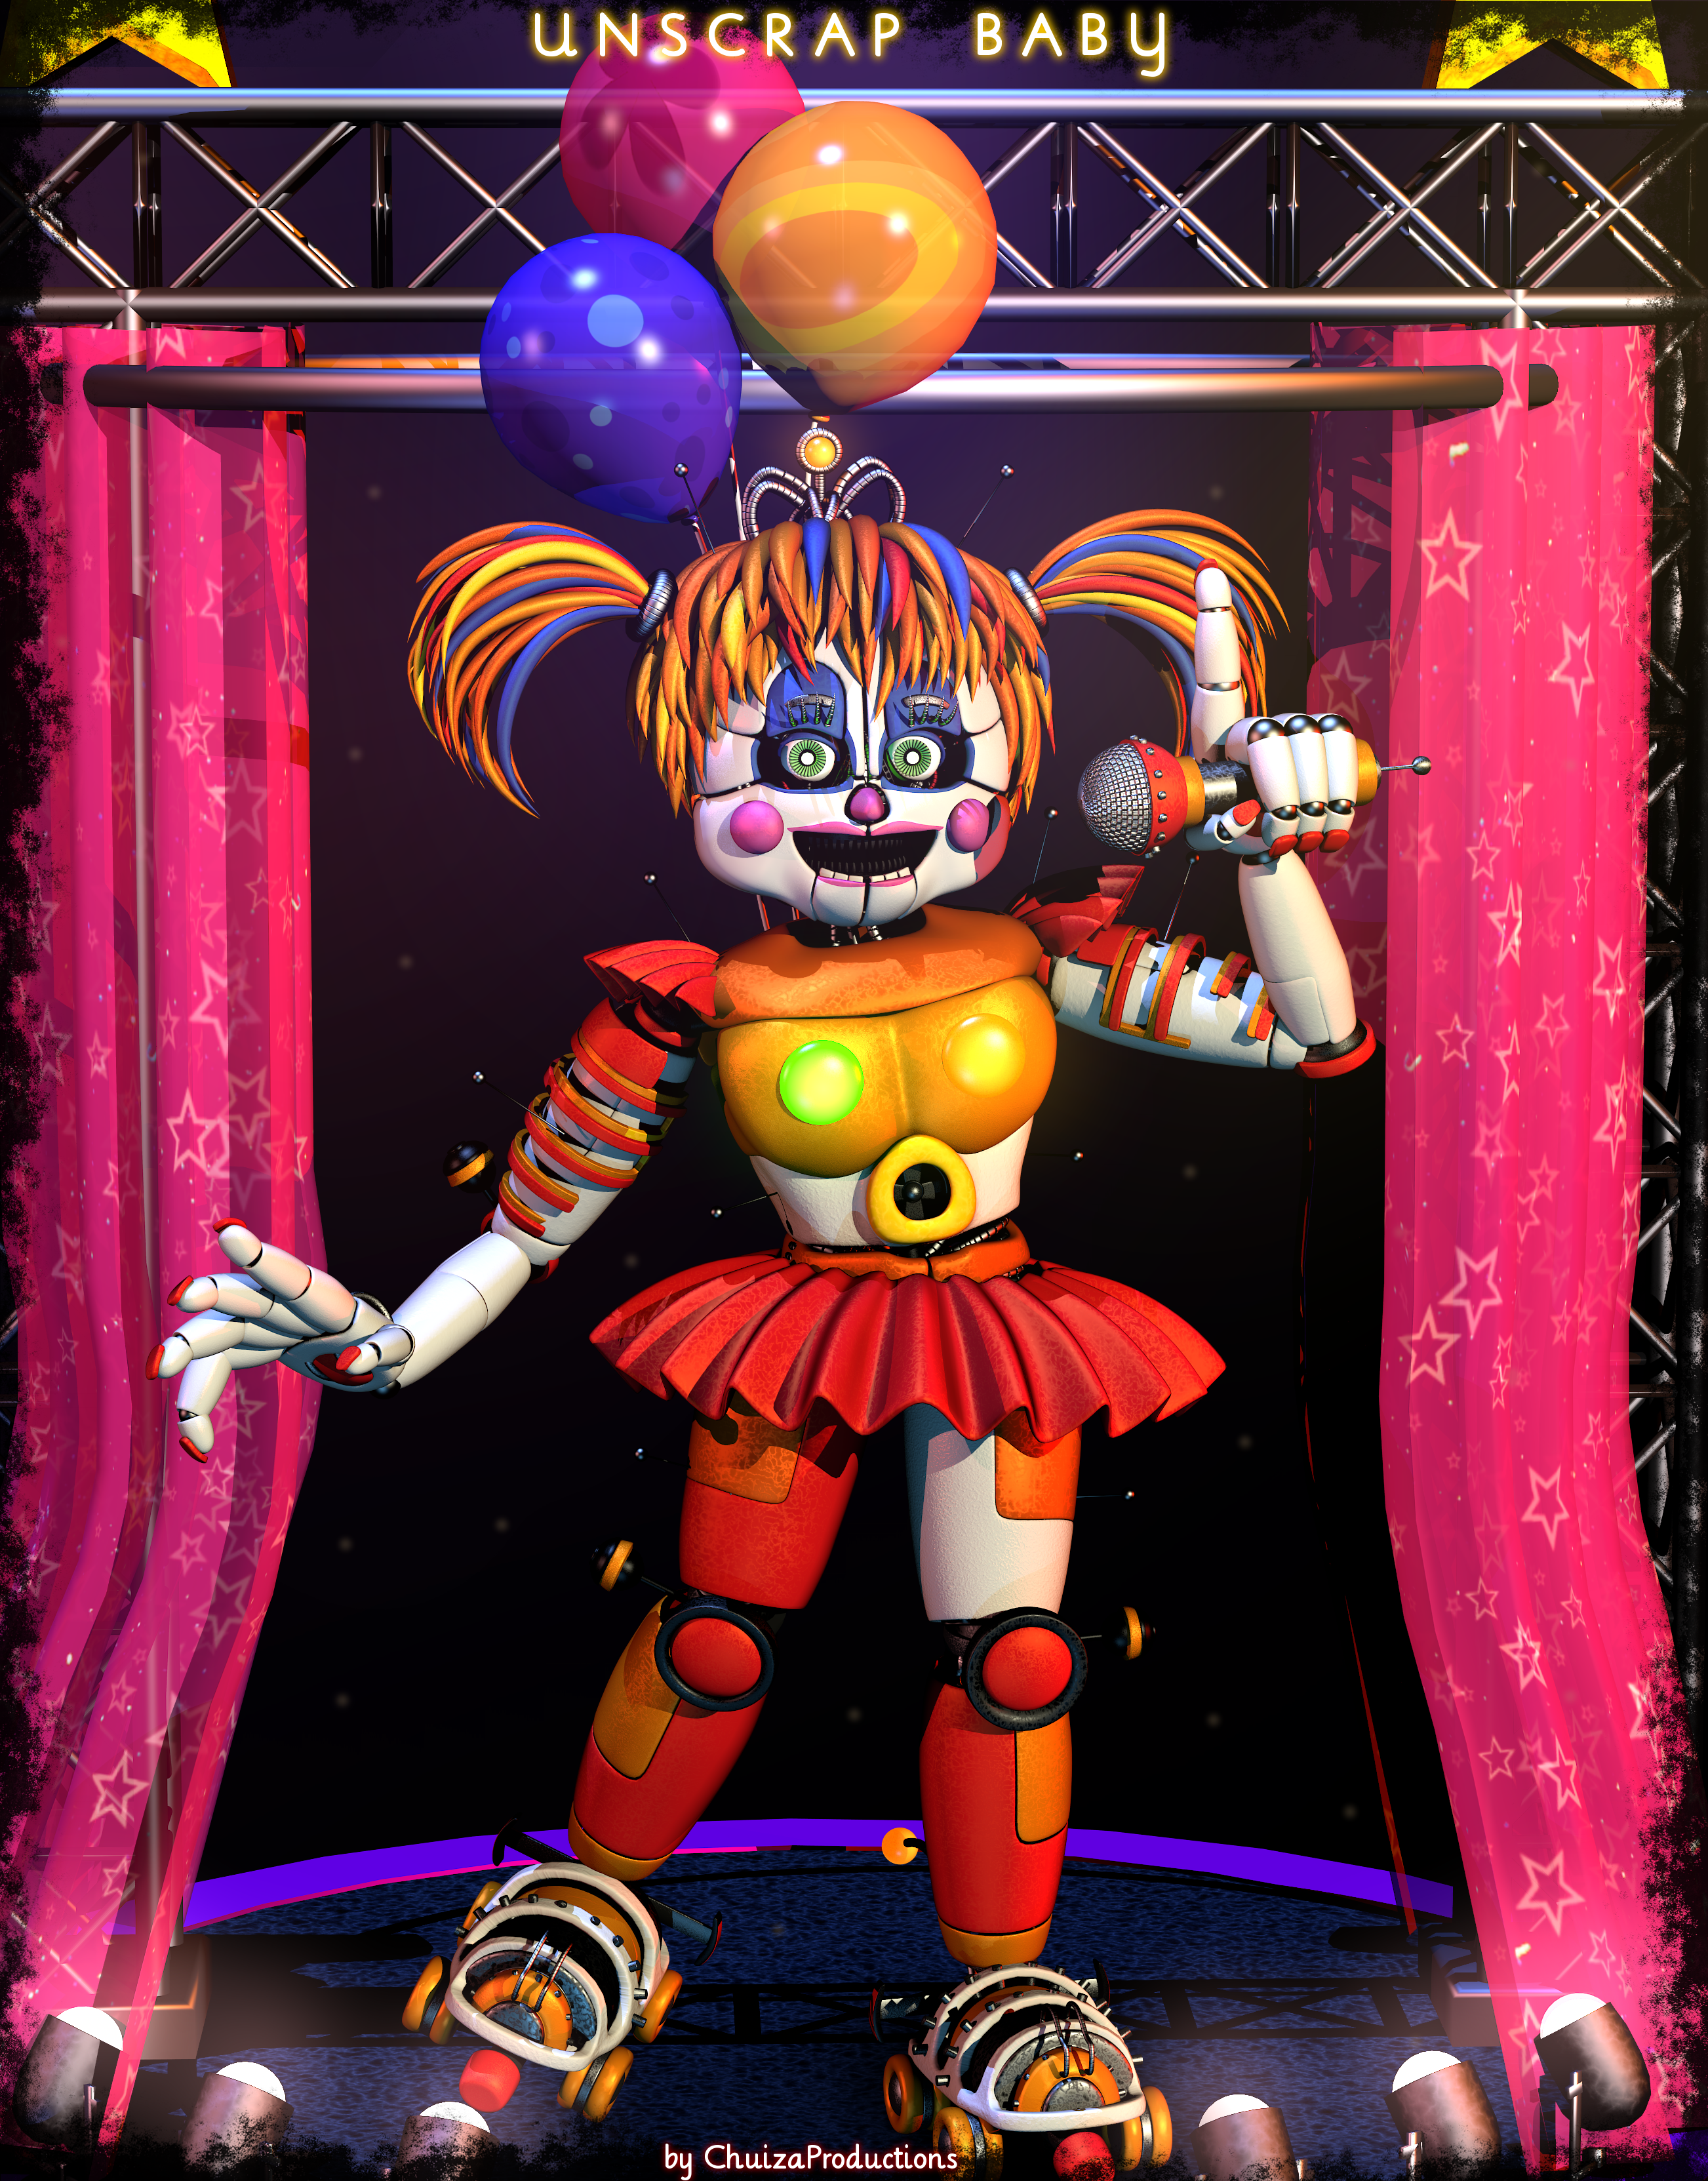 Five Nights At Freddy S Circus Baby Wallpaper Unscrap Baby Fullbody Fnaf 6 Ffps By Chuizaproductions Fnaf Fnaf Wallpapers Fnaf Baby